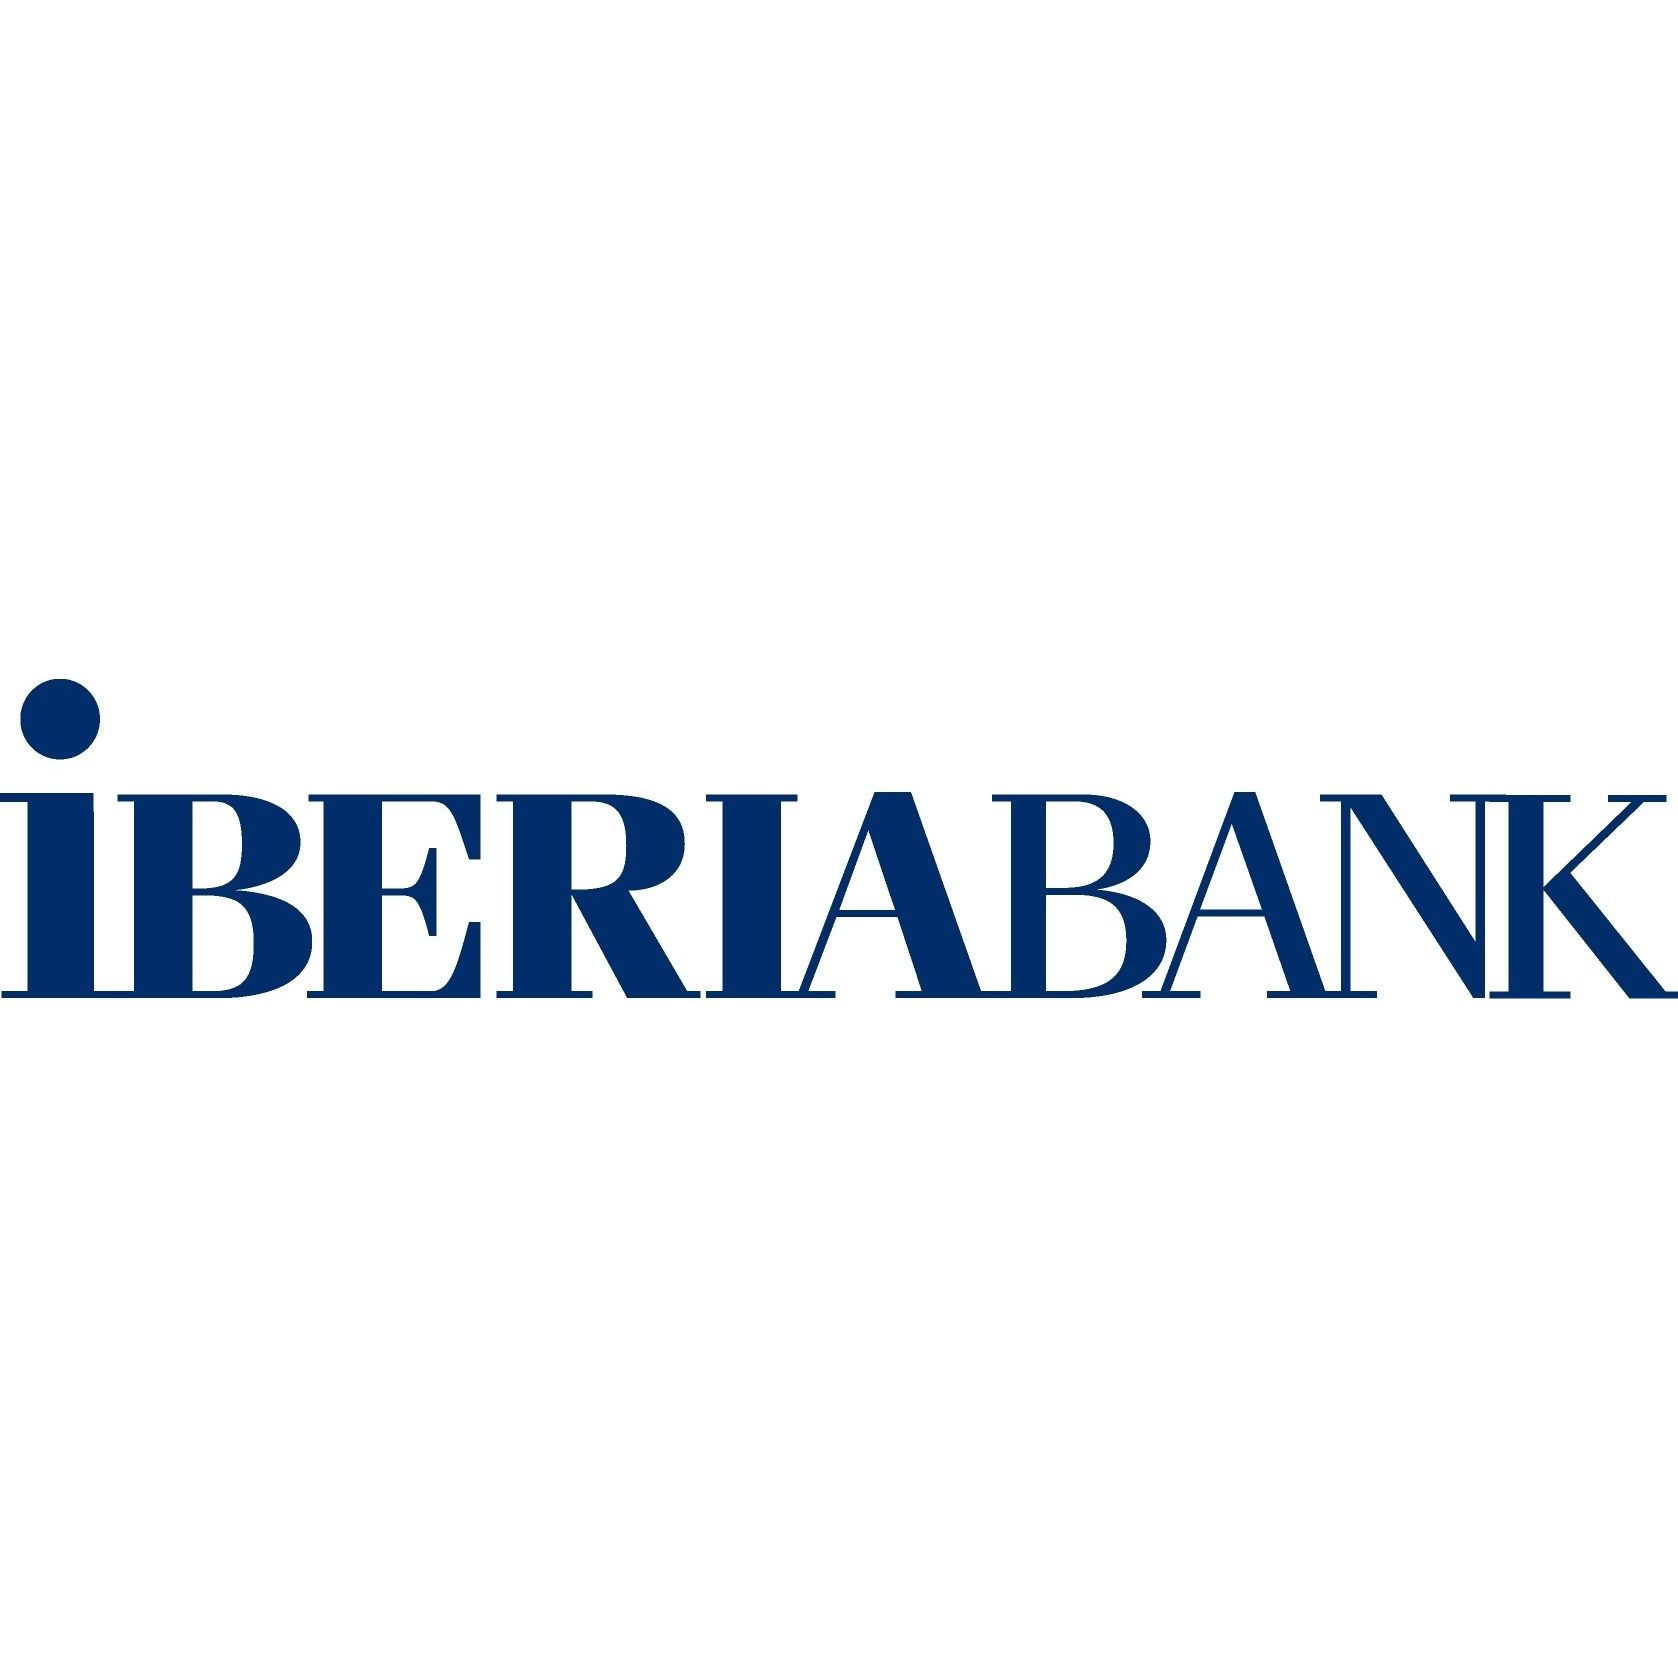 Neil Solanki: IBERIABANK Mortgage - Closed